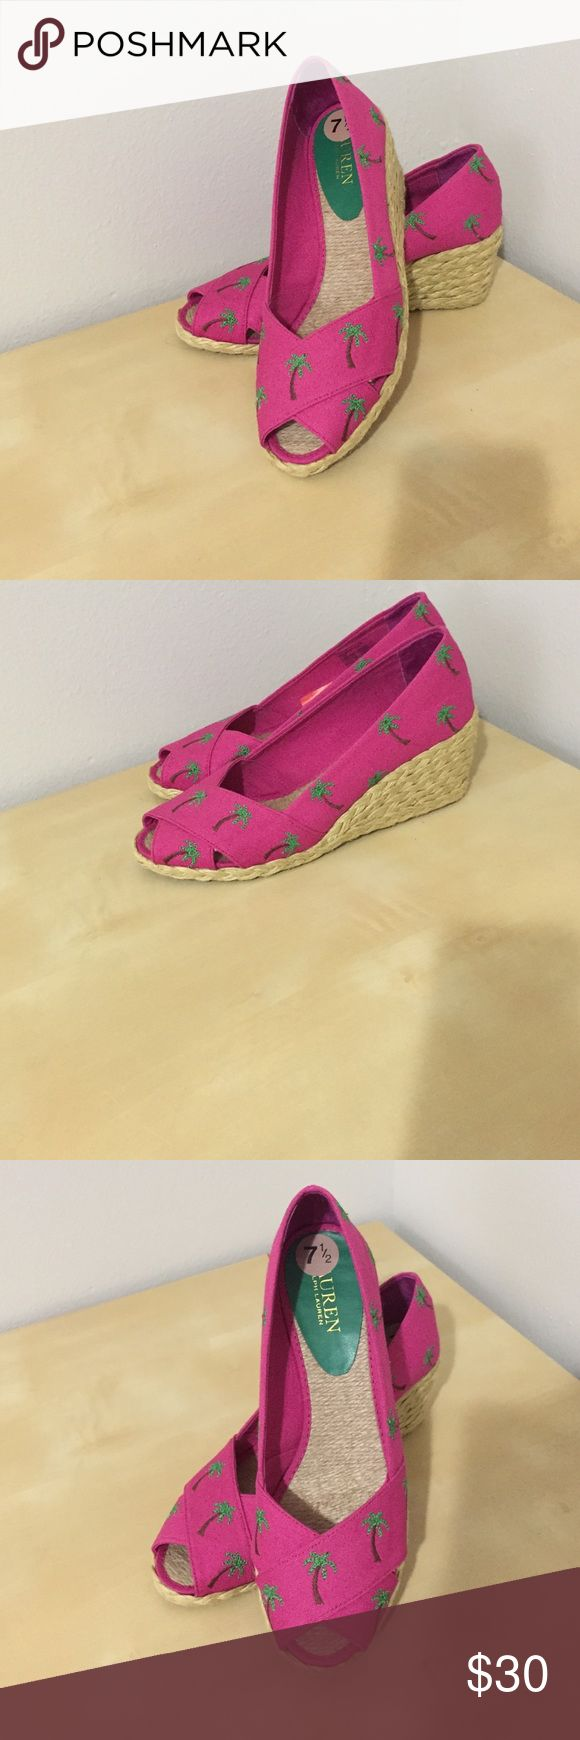 Lauren Ralph Lauren Canvas Pink Lauren Ralph Lauren Canvas Pink 7,5 Lauren Ralph Lauren Shoes Wedges